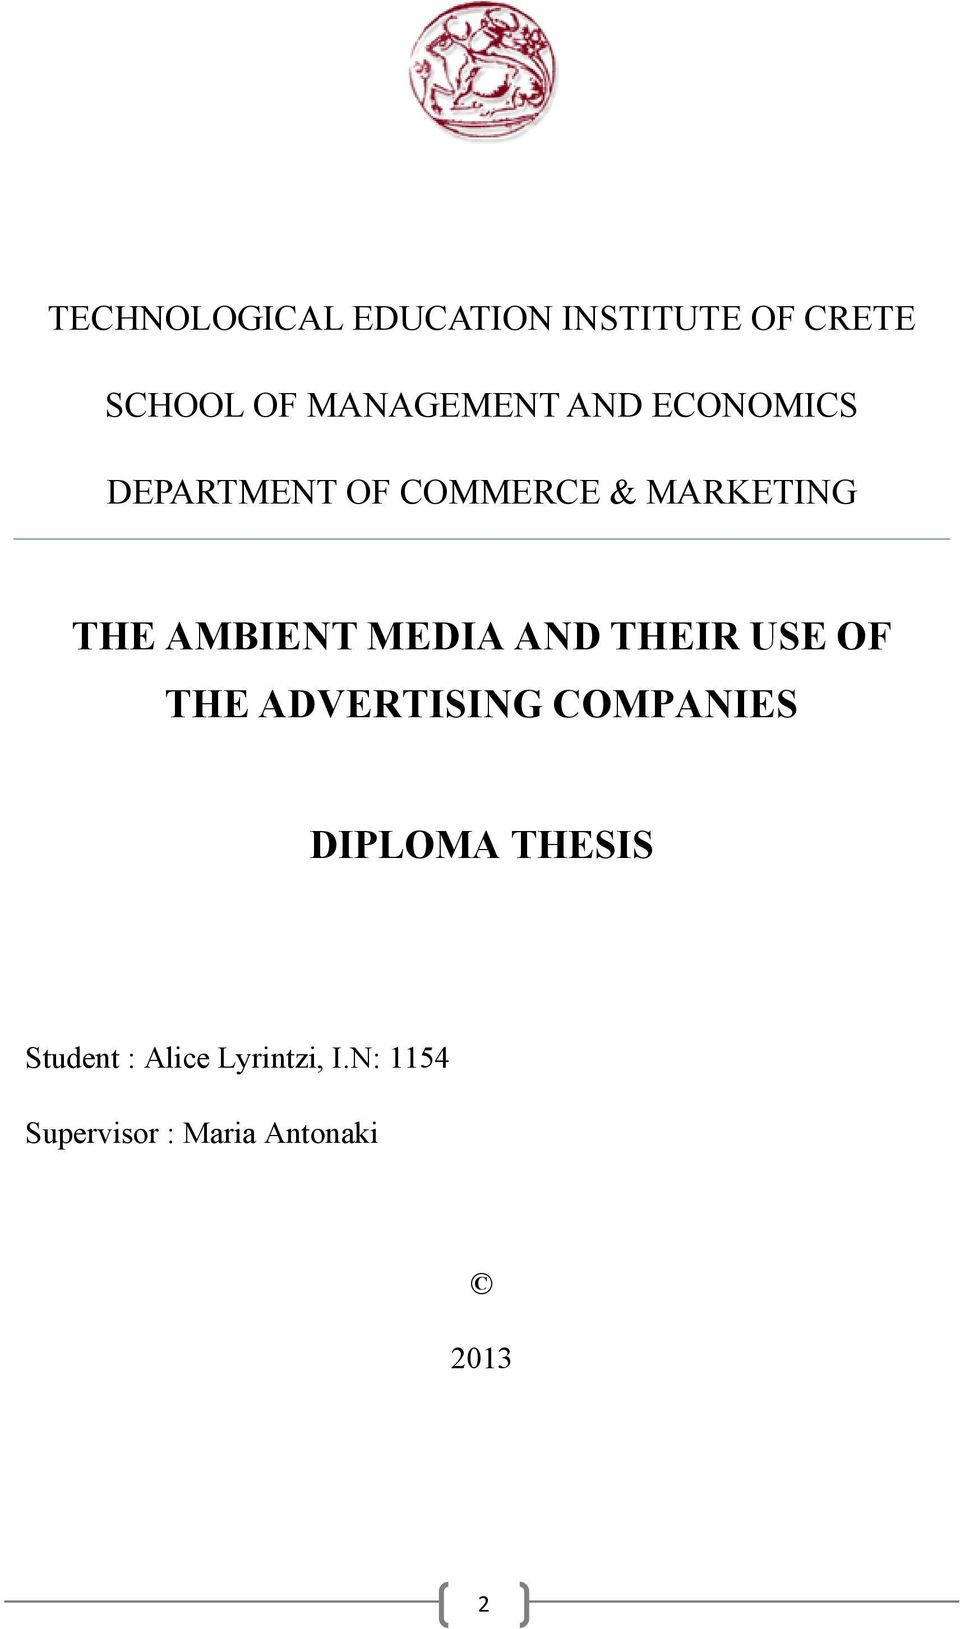 MEDIA AND THEIR USE OF THE ADVERTISING COMPANIES DIPLOMA THESIS